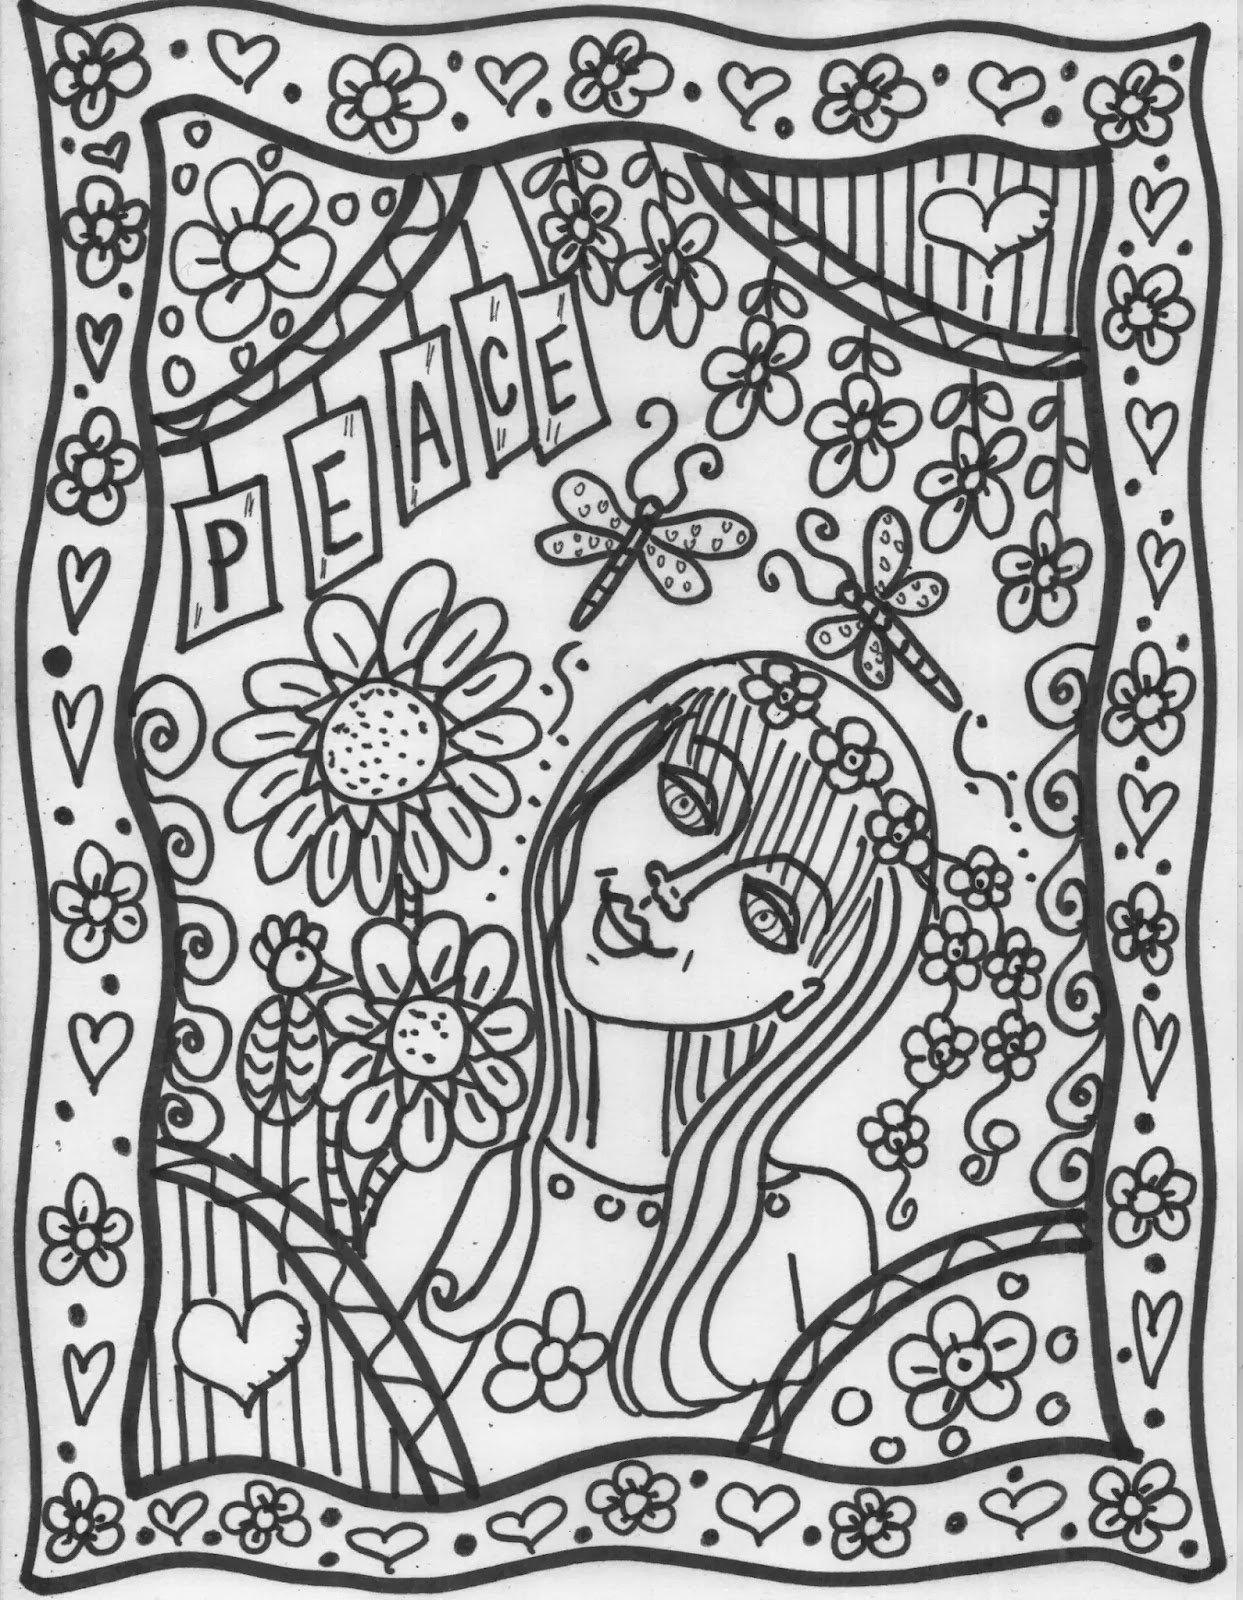 hippie girl coloring pages build your own coloring book select pages go back to my coloring pages hippie girl